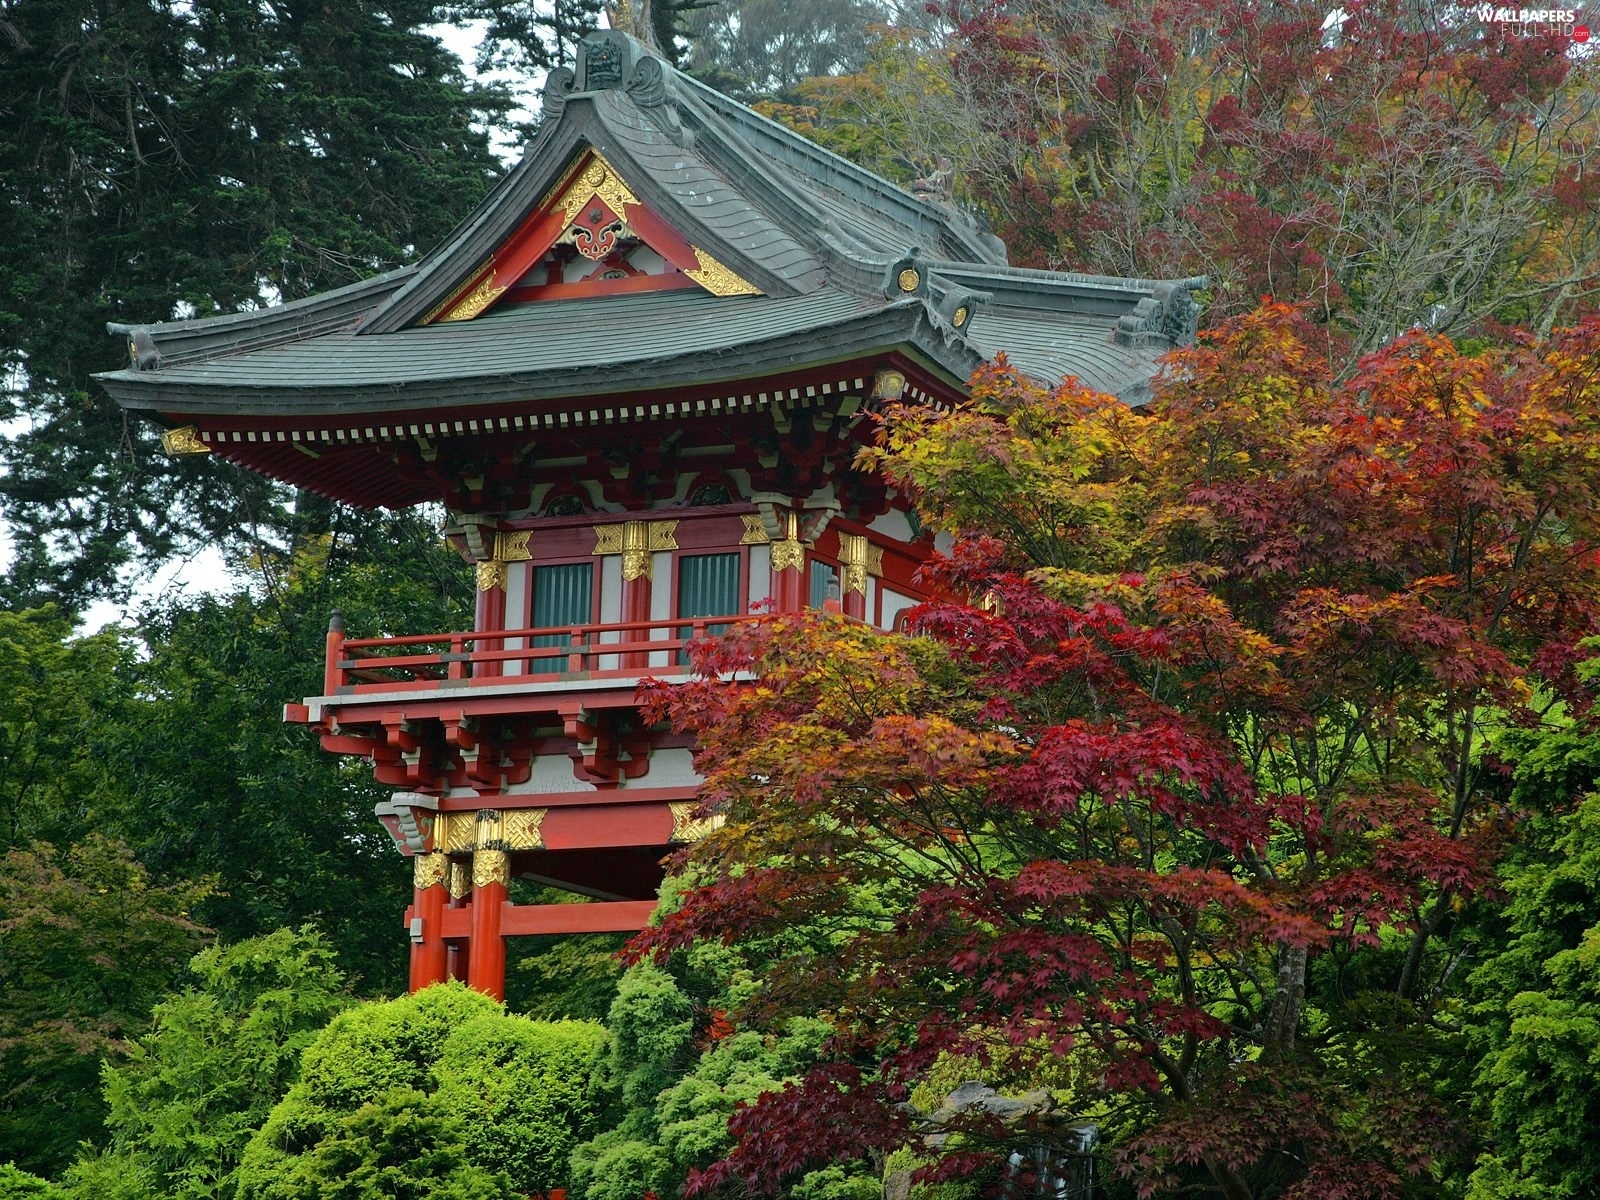 trees, decorating, Japan, house, viewes, Golden